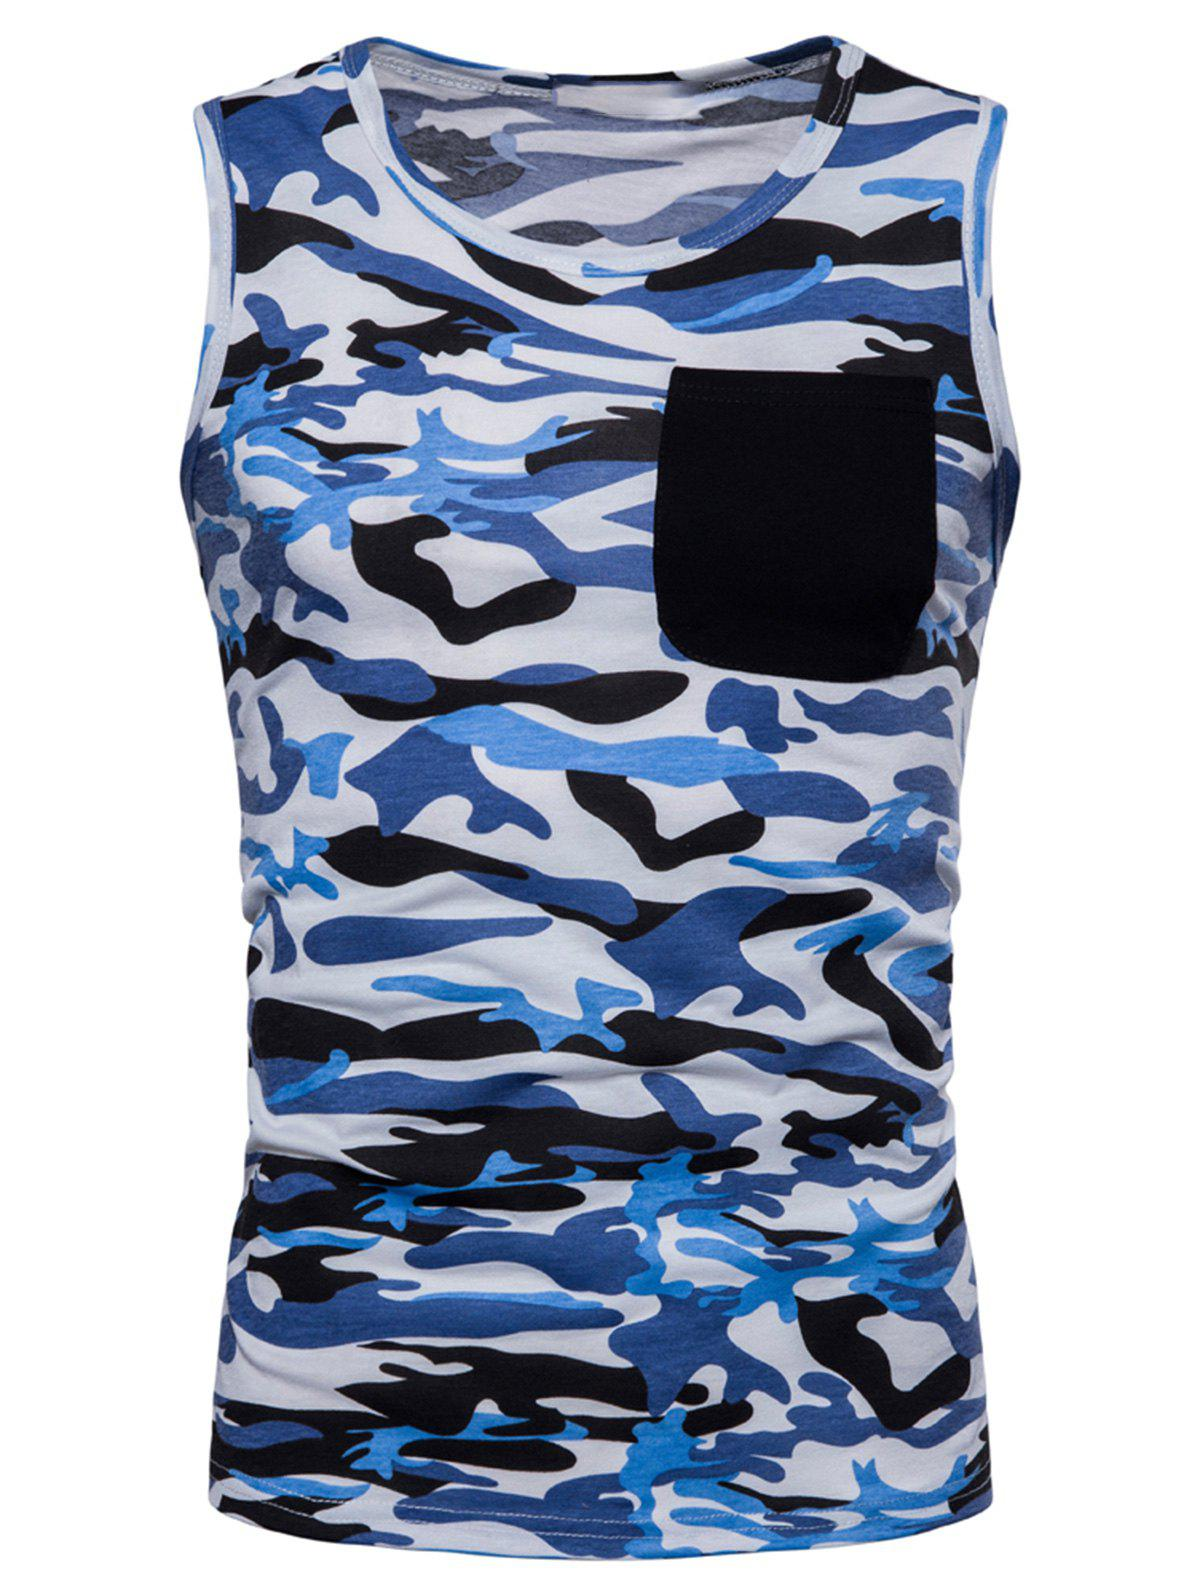 Hot Pocket Camo Print Tank Top